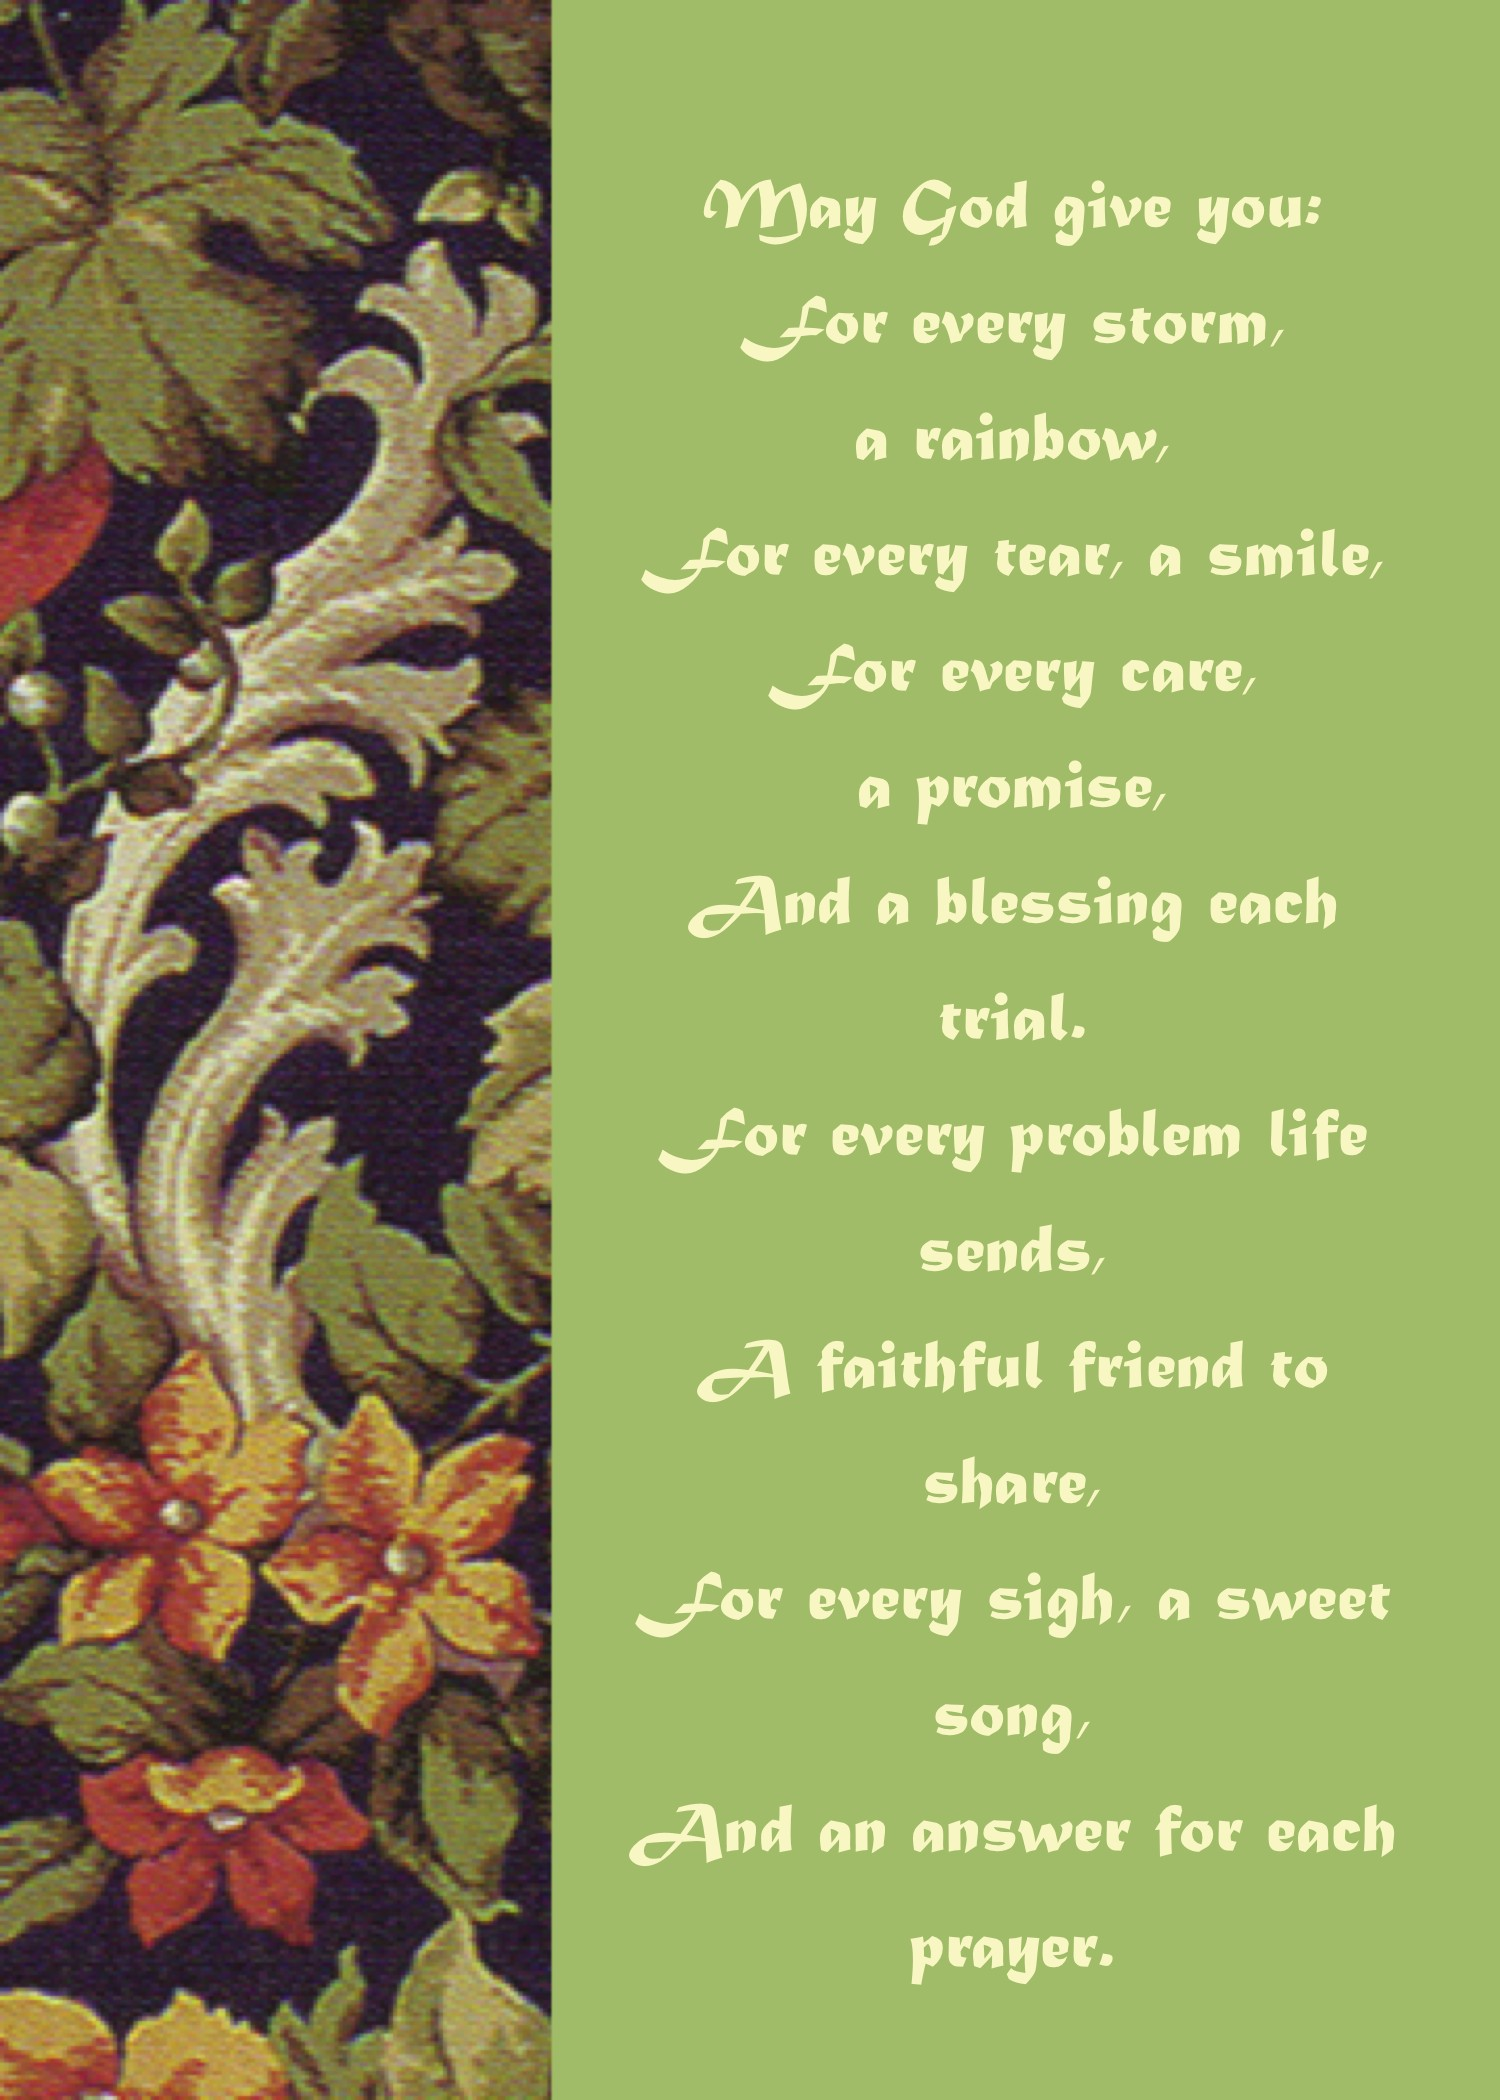 Irish Blessing May God Give You for Every Storm a Rainbow